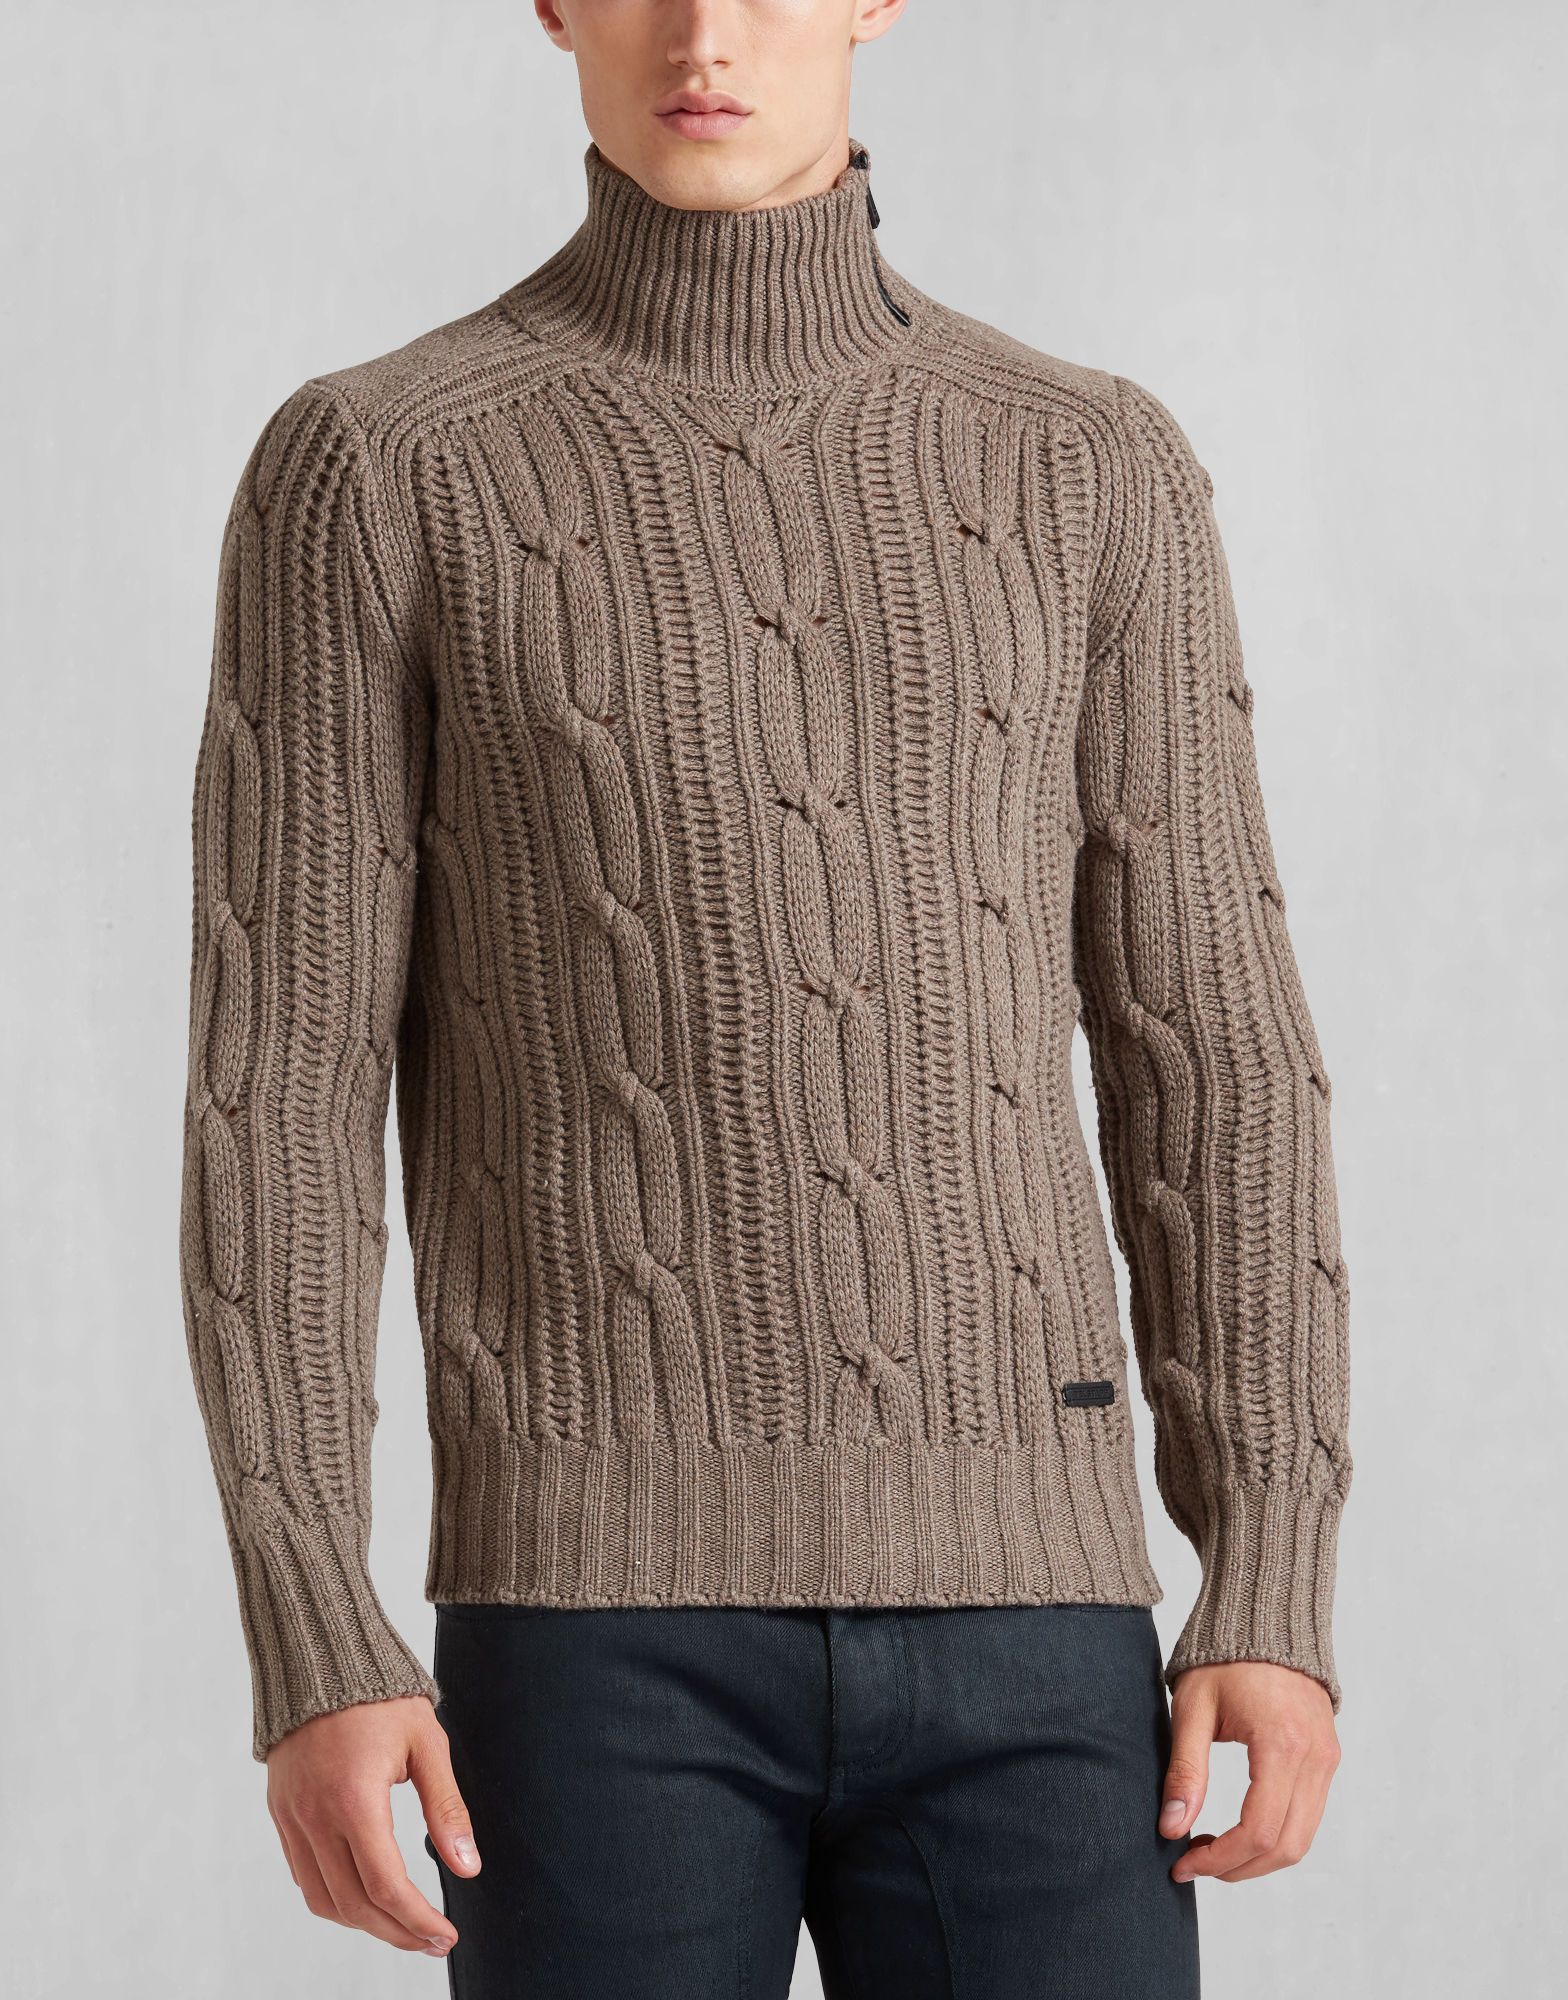 11b8b8470609 Easterton Sweater Ls - Bark Knitwear